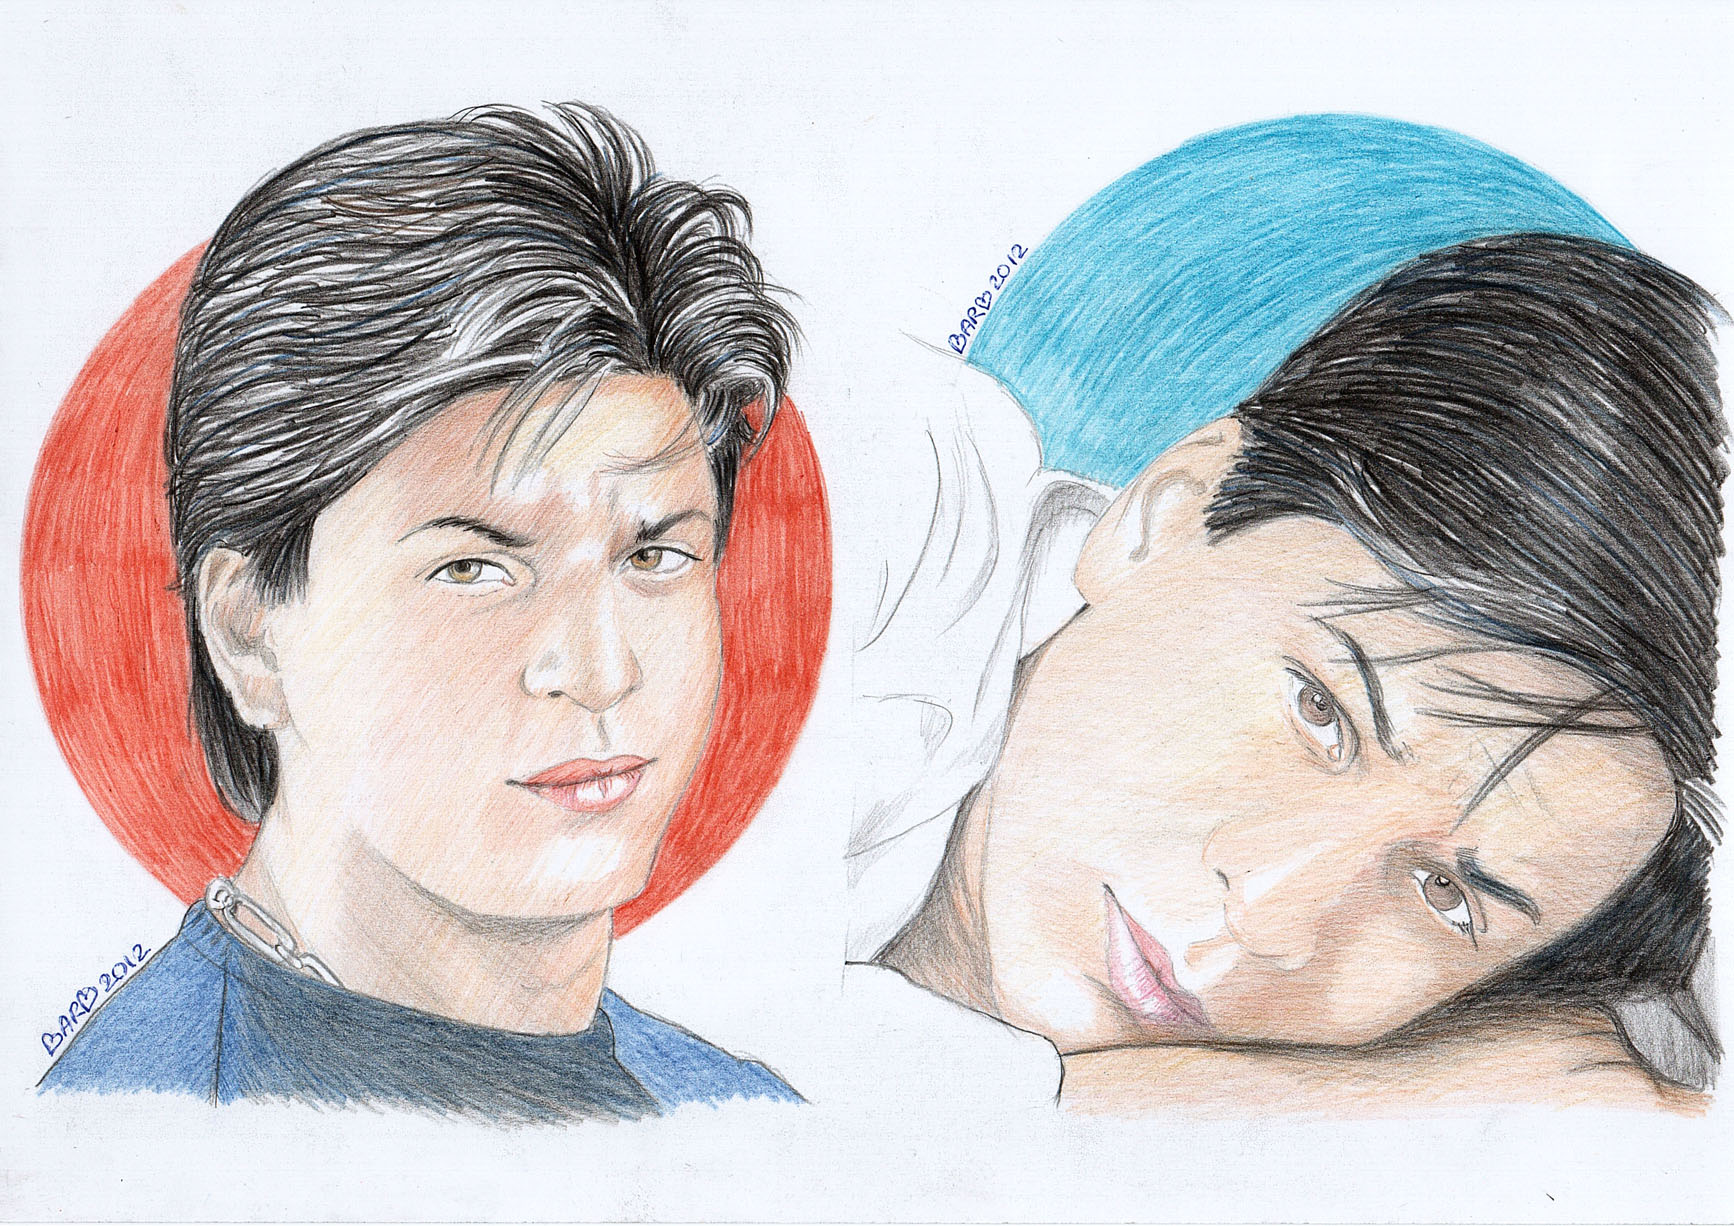 sharukh khan coloring pages - photo#17